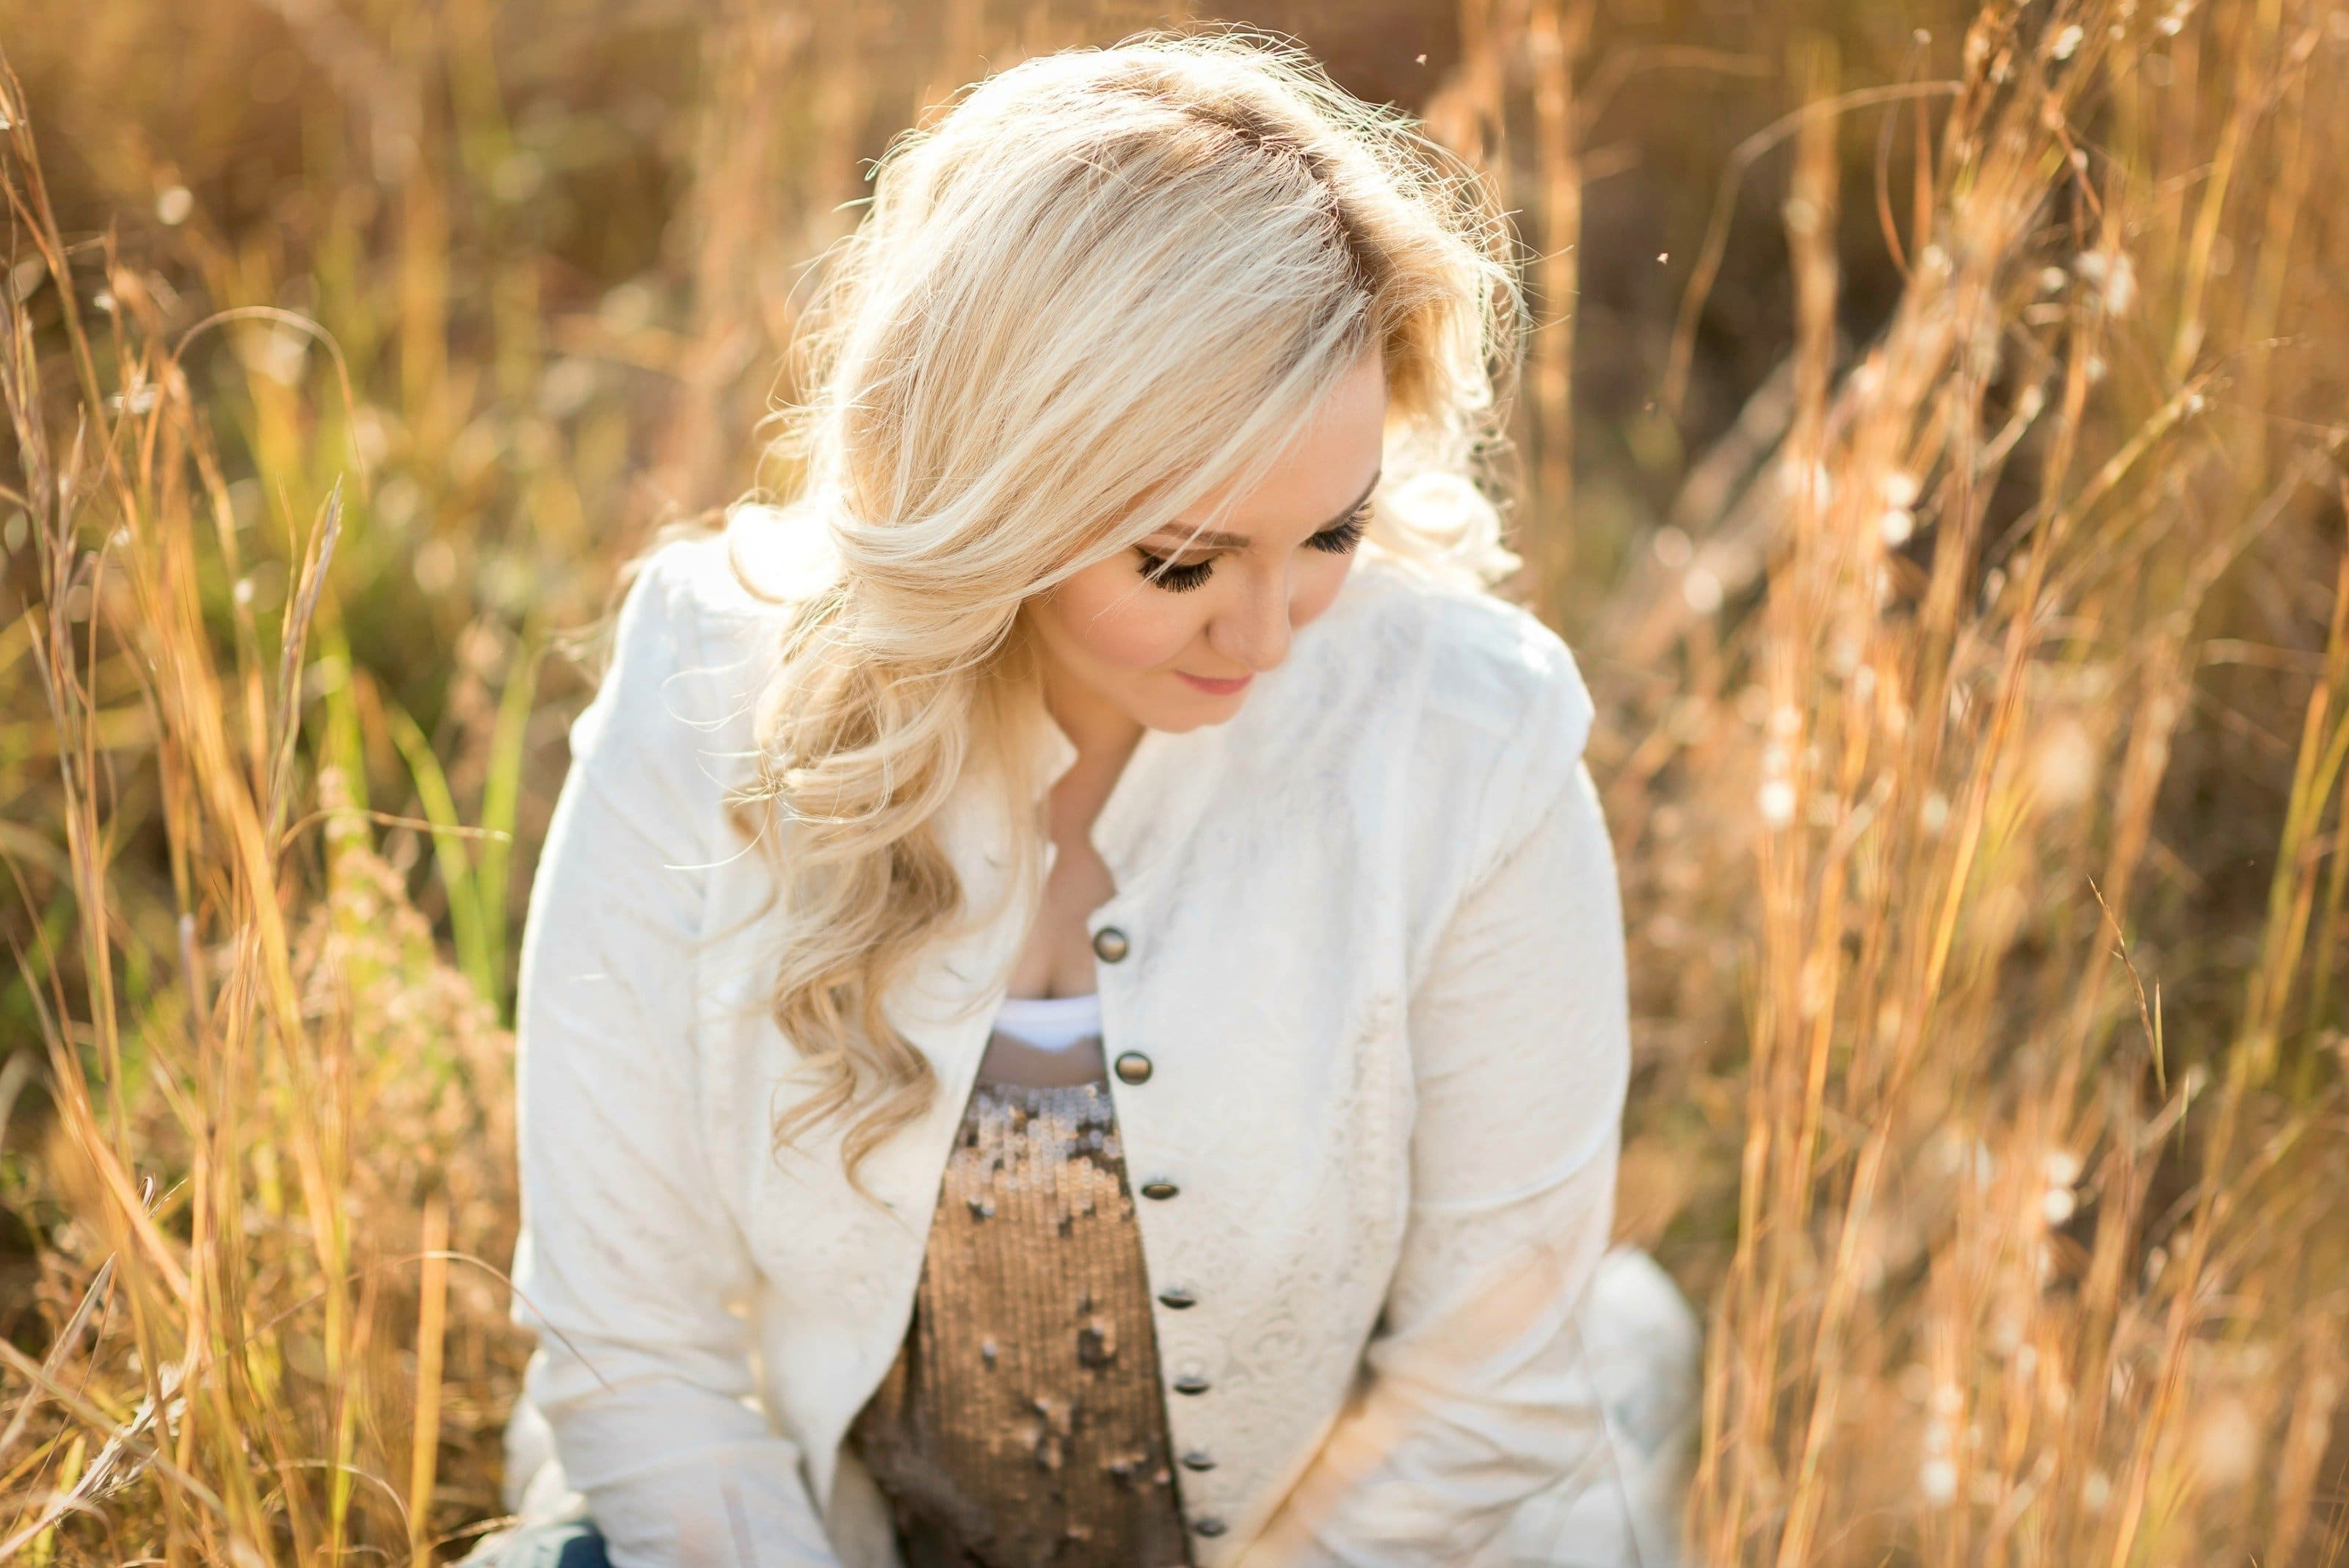 Singer Morgan White expecting a baby girl